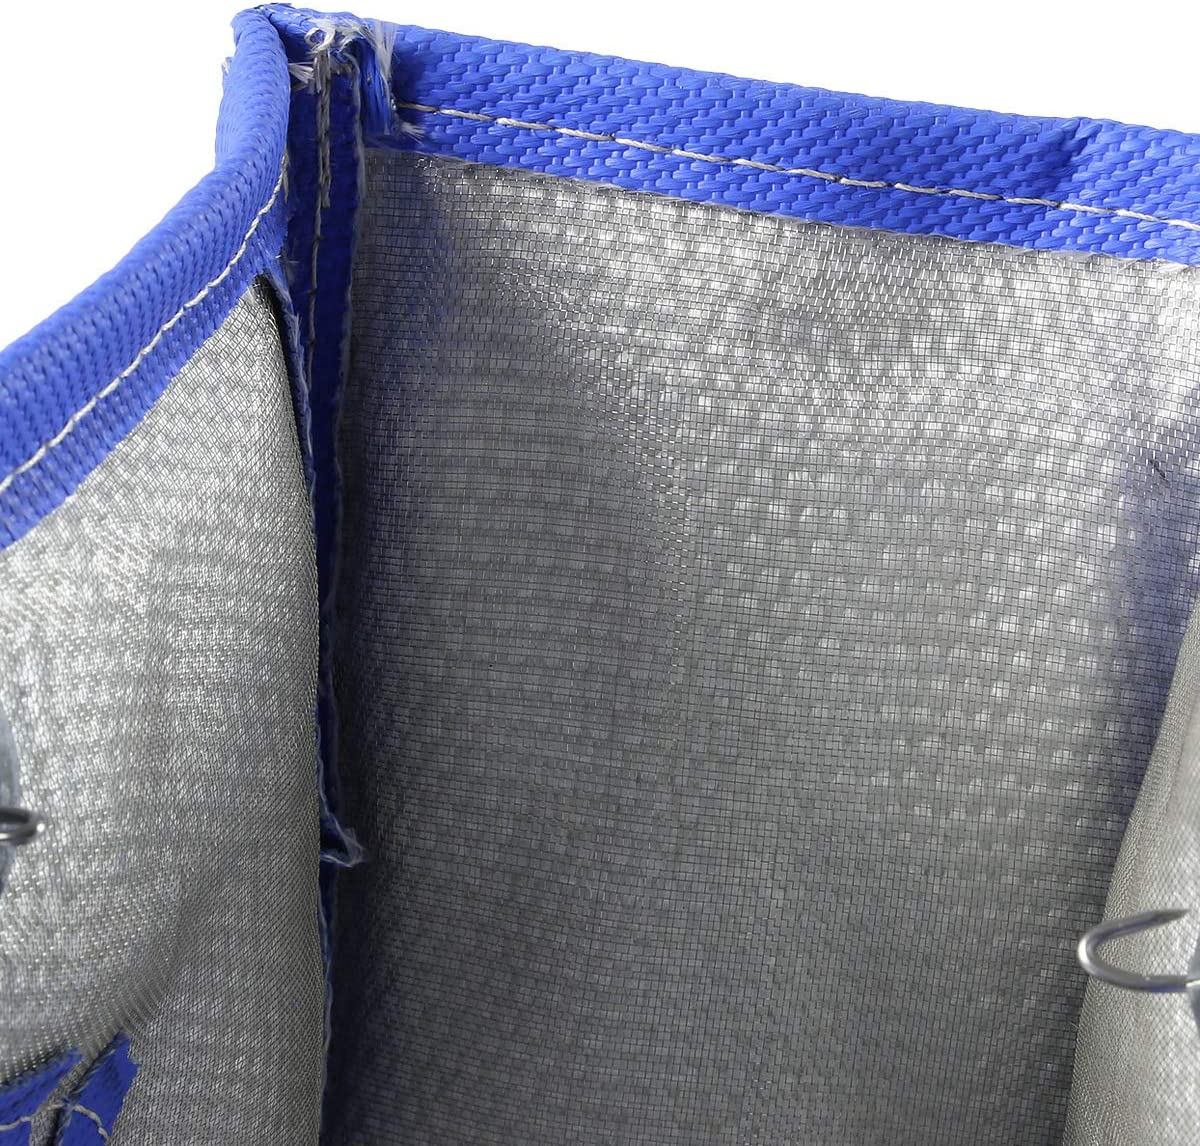 Blue T4 Stainless Steel Knitted Mesh Turbocharger Heat Shield Wrap Blanket